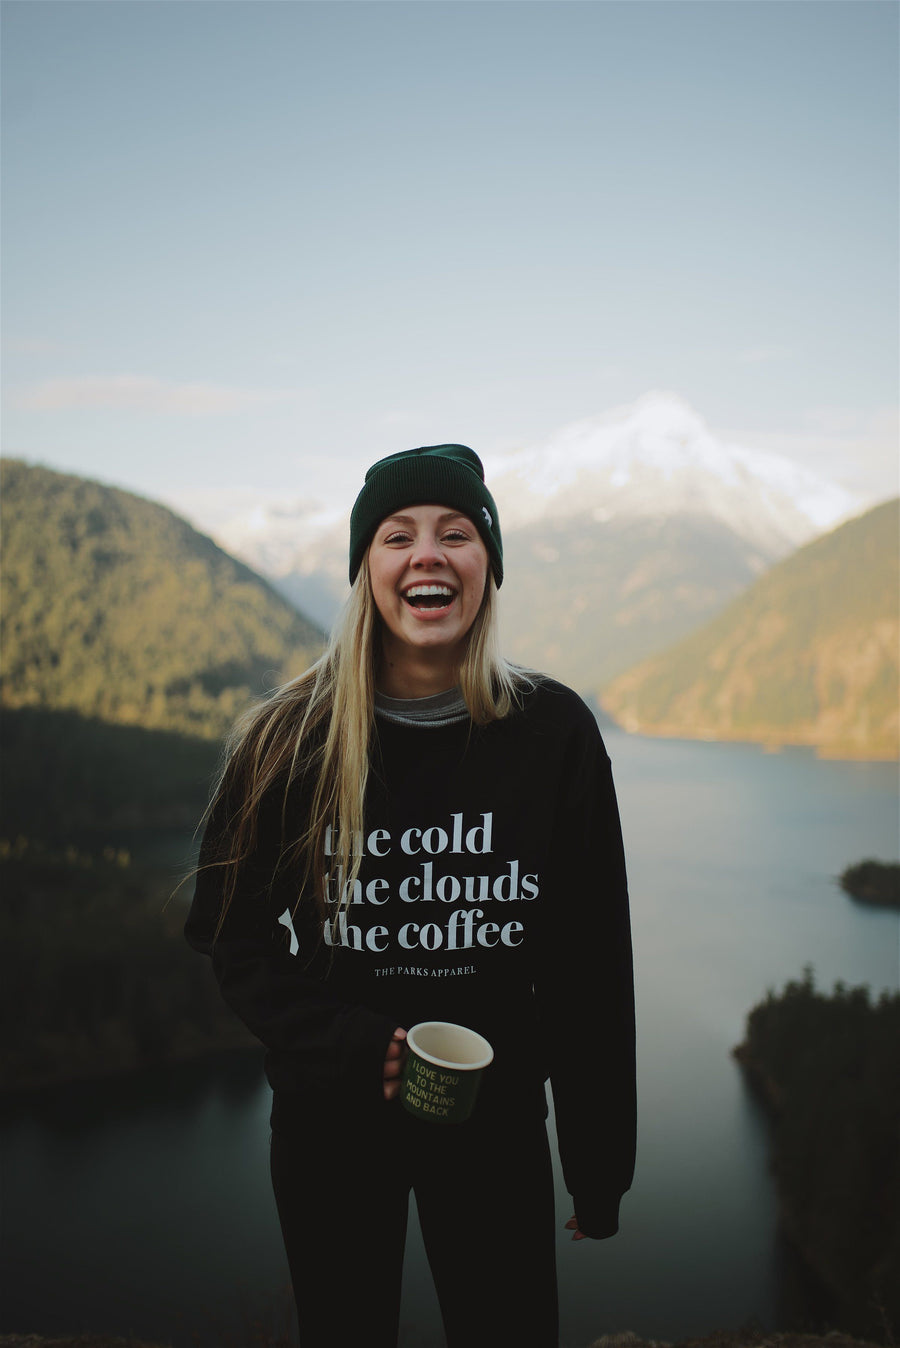 Cold, Clouds & Coffee Crewneck - Wondery, A Parks Apparel Brand